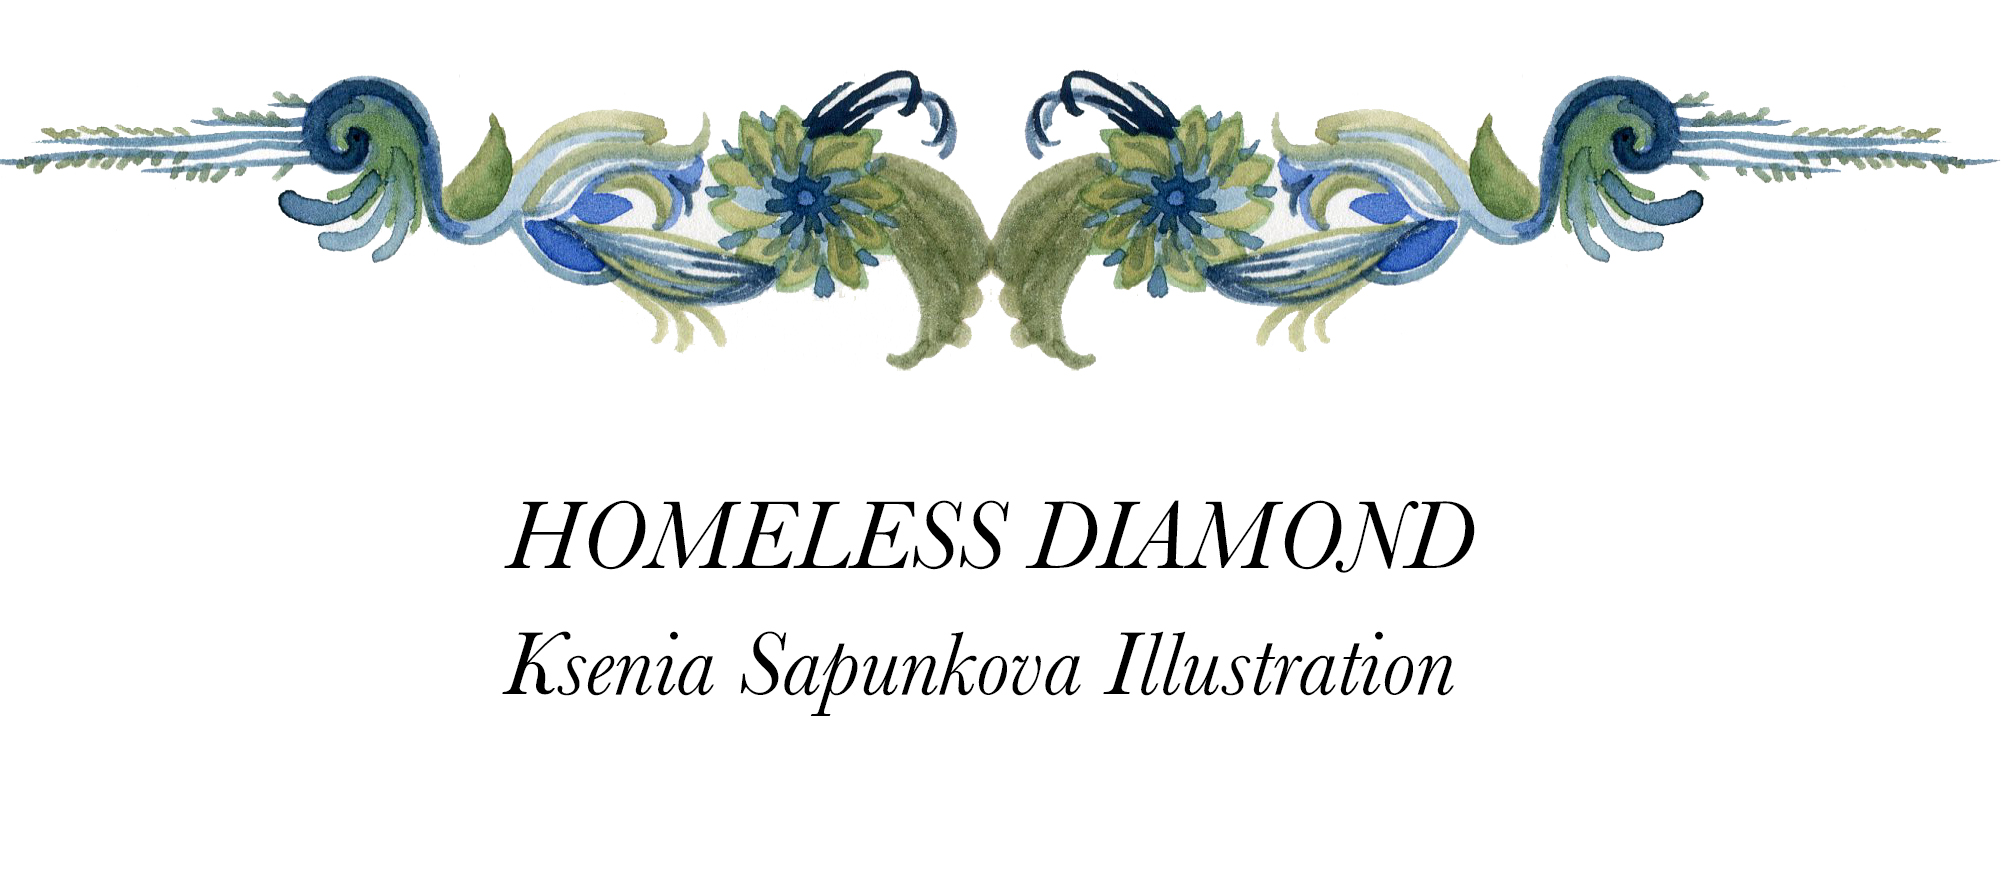 HOMELESS DIAMOND